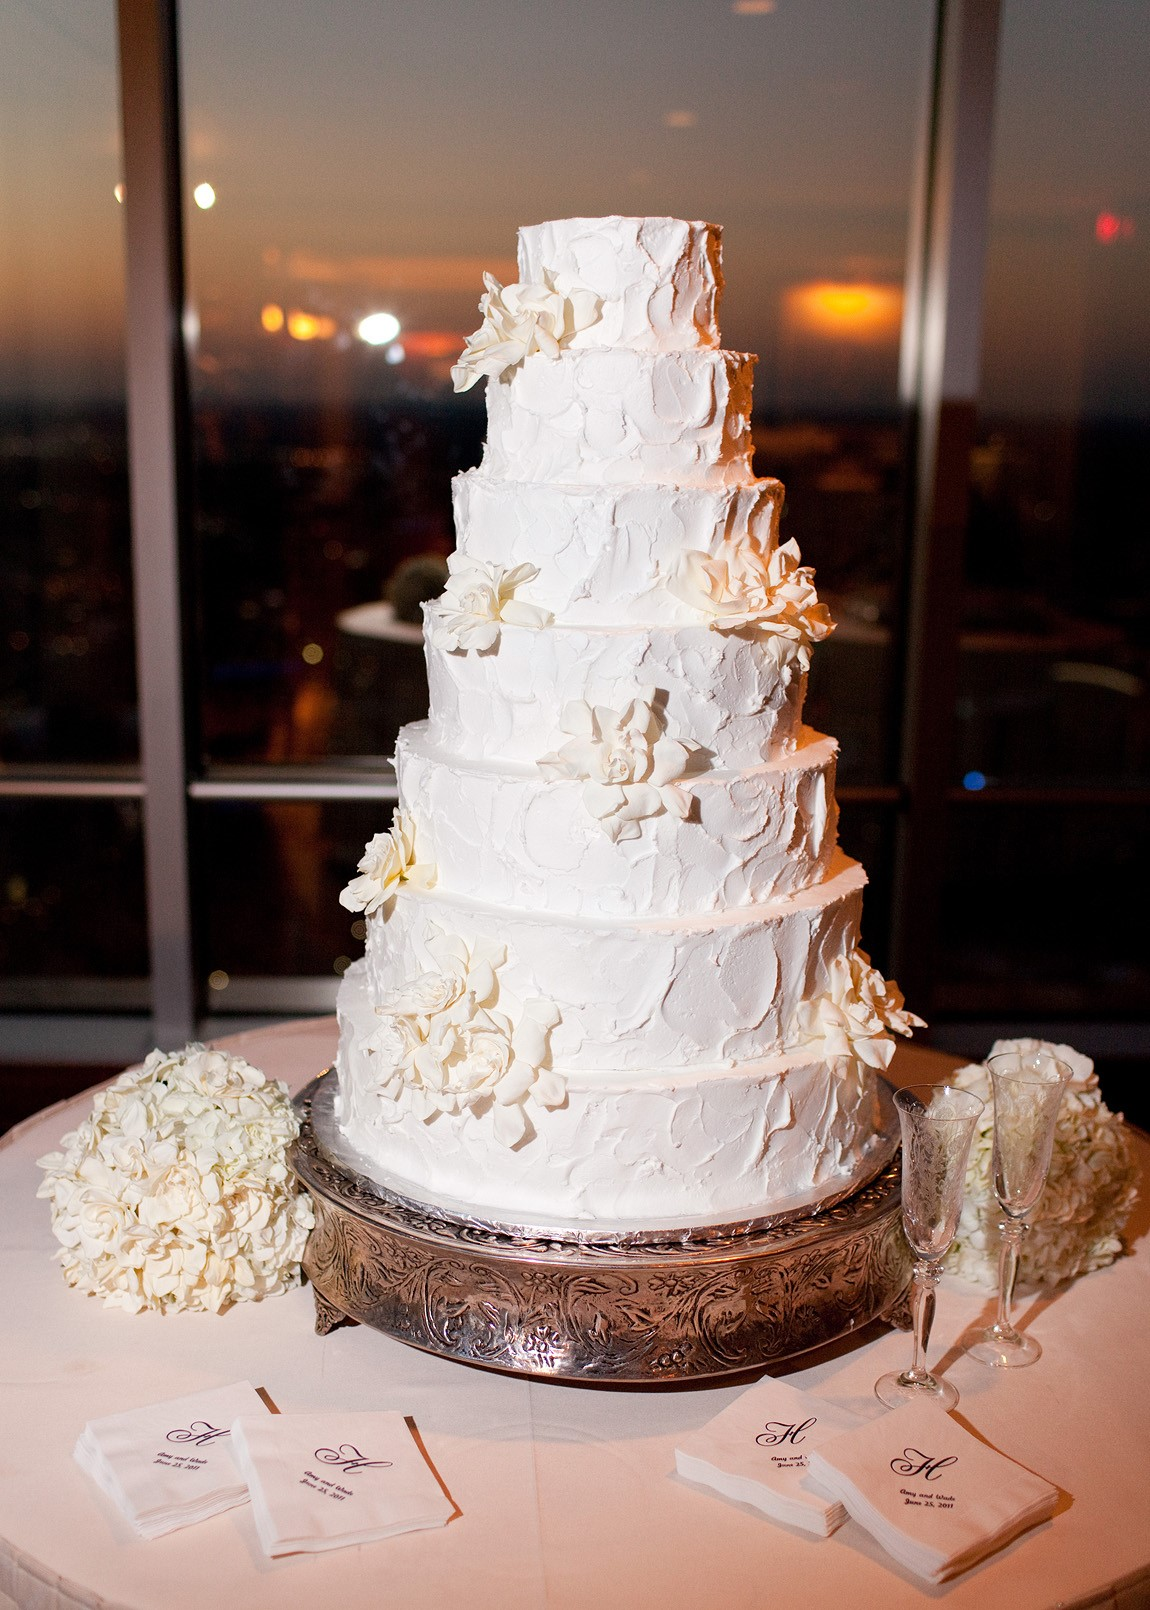 Best Southern Wedding Cake Bakeriesdraper James Blog